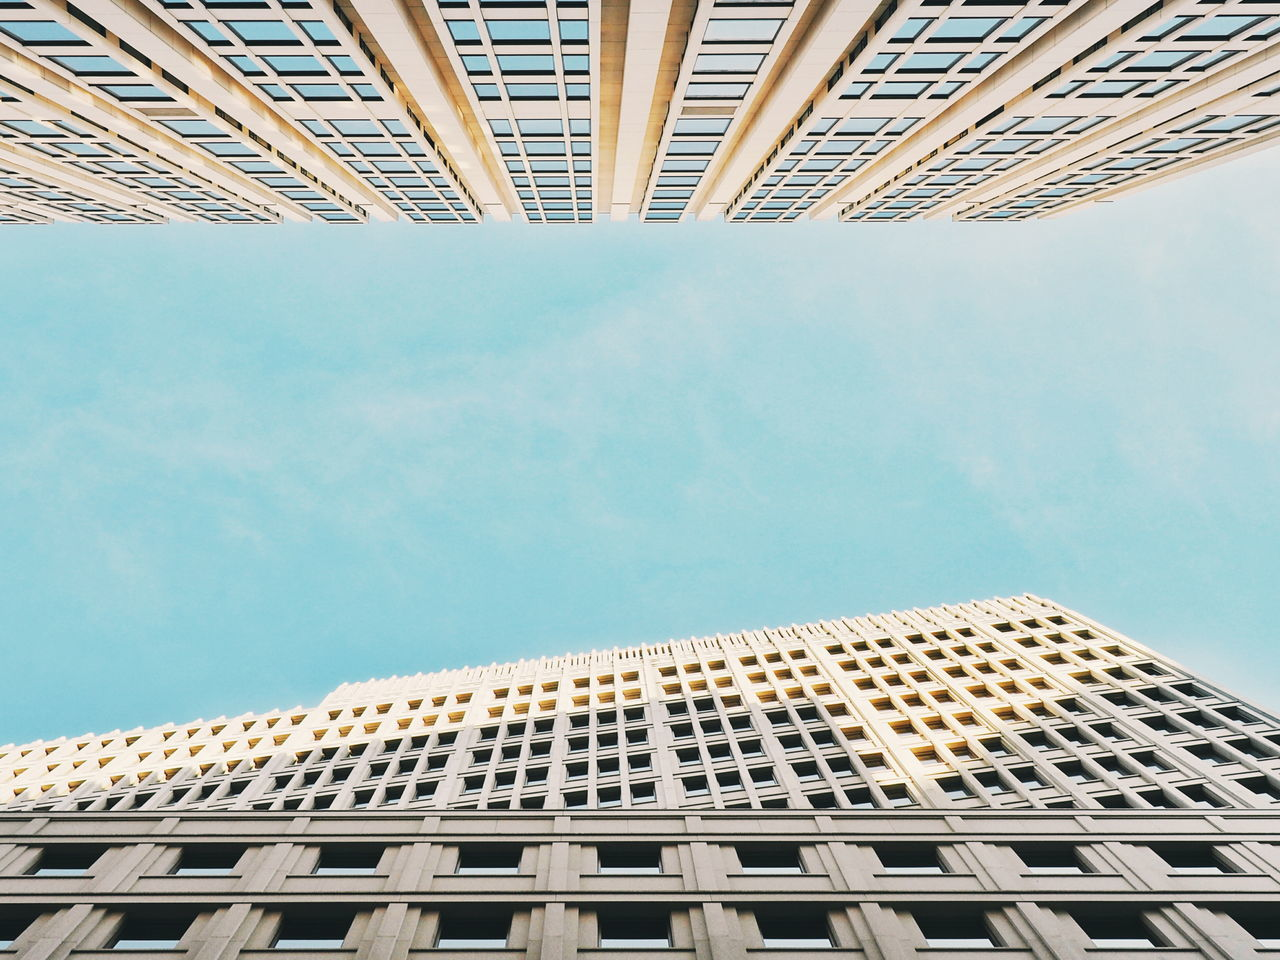 The Architect - 2016 EyeEm Awards Architecture Architecture_collection Architecturelovers Architectureporn Lookingup Look Up And Thrive Architecture And Sky Modern Architecture Skyscraper Skyscrapers Looking Up At The Sky Facades Facadelovers Facade Building EyeEm Best Shots Eye4photography  Urbanphotography Urban Architecture Built Structure Manmade Manmadestructures The Week On EyeEm